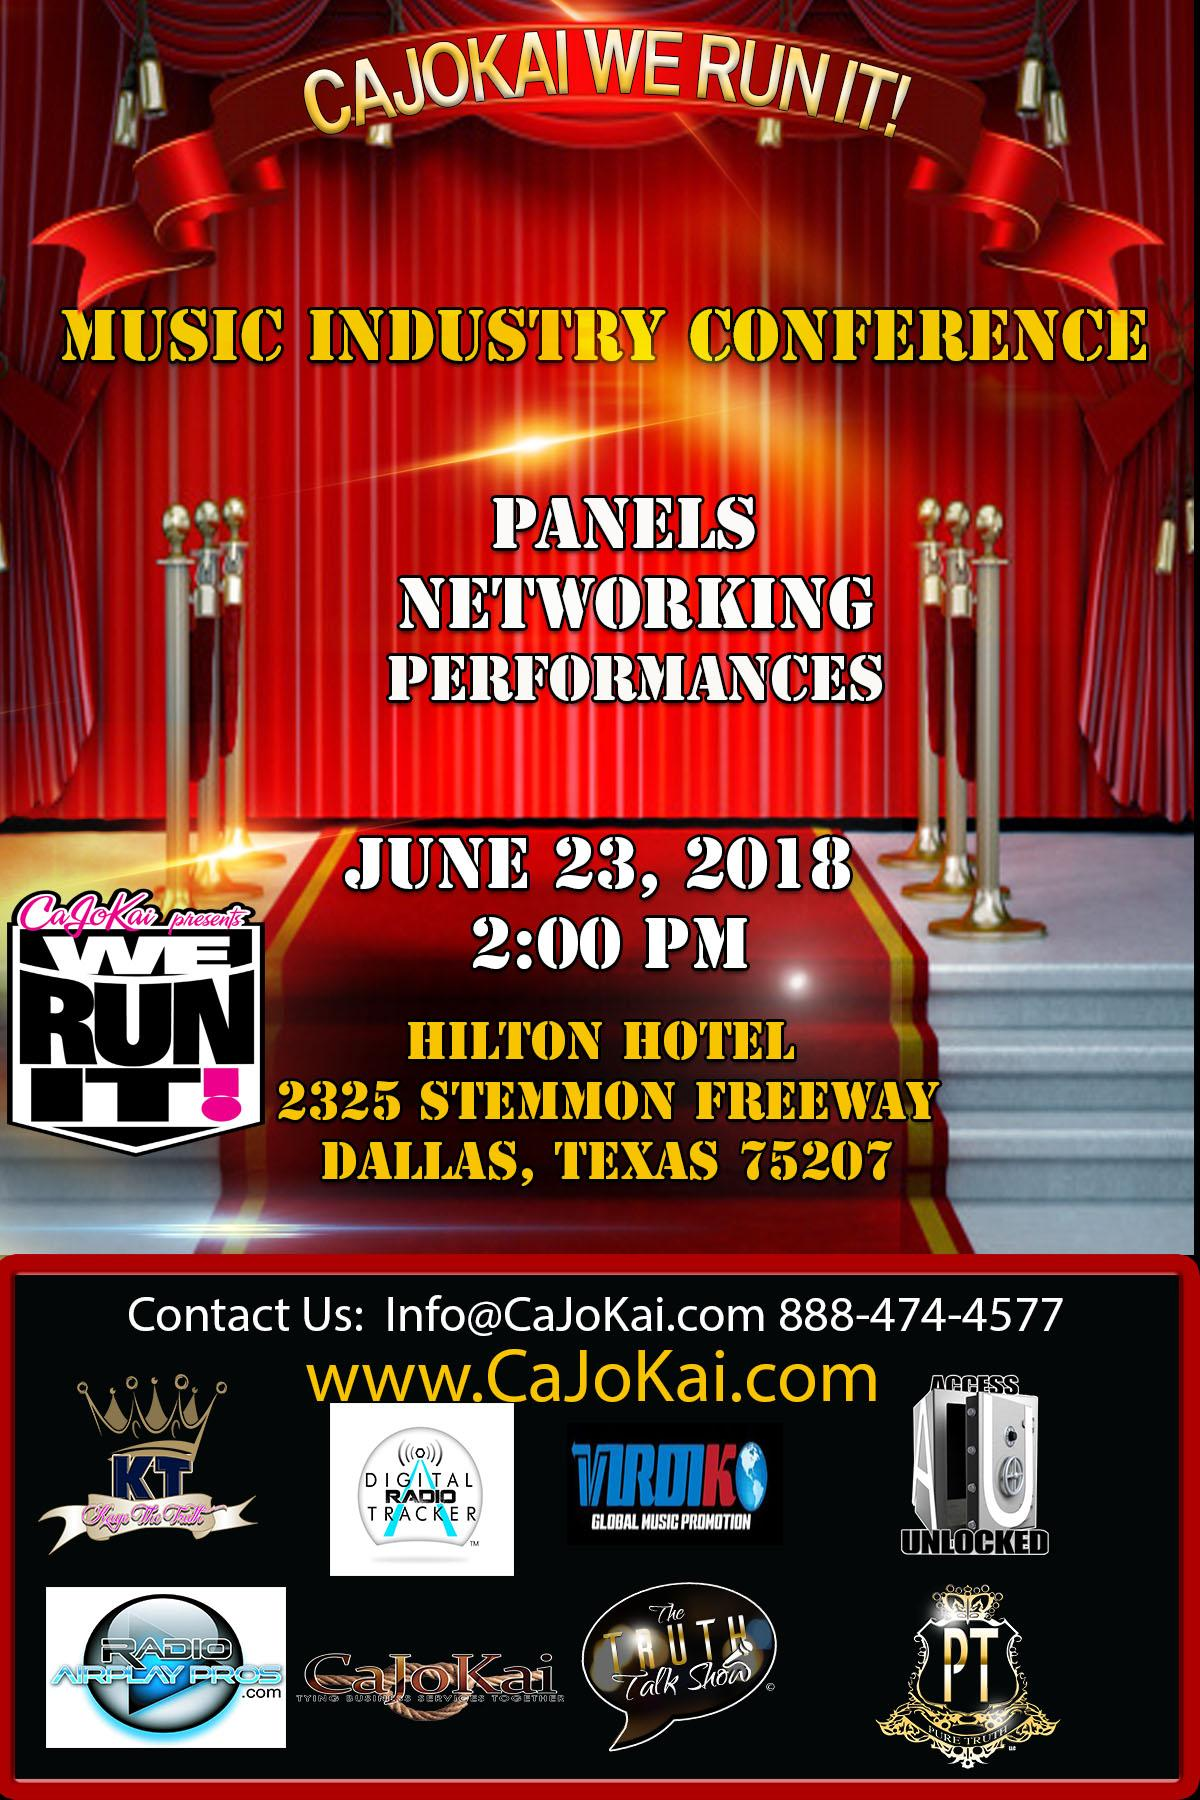 2018 CaJoKai We Run It! Conference